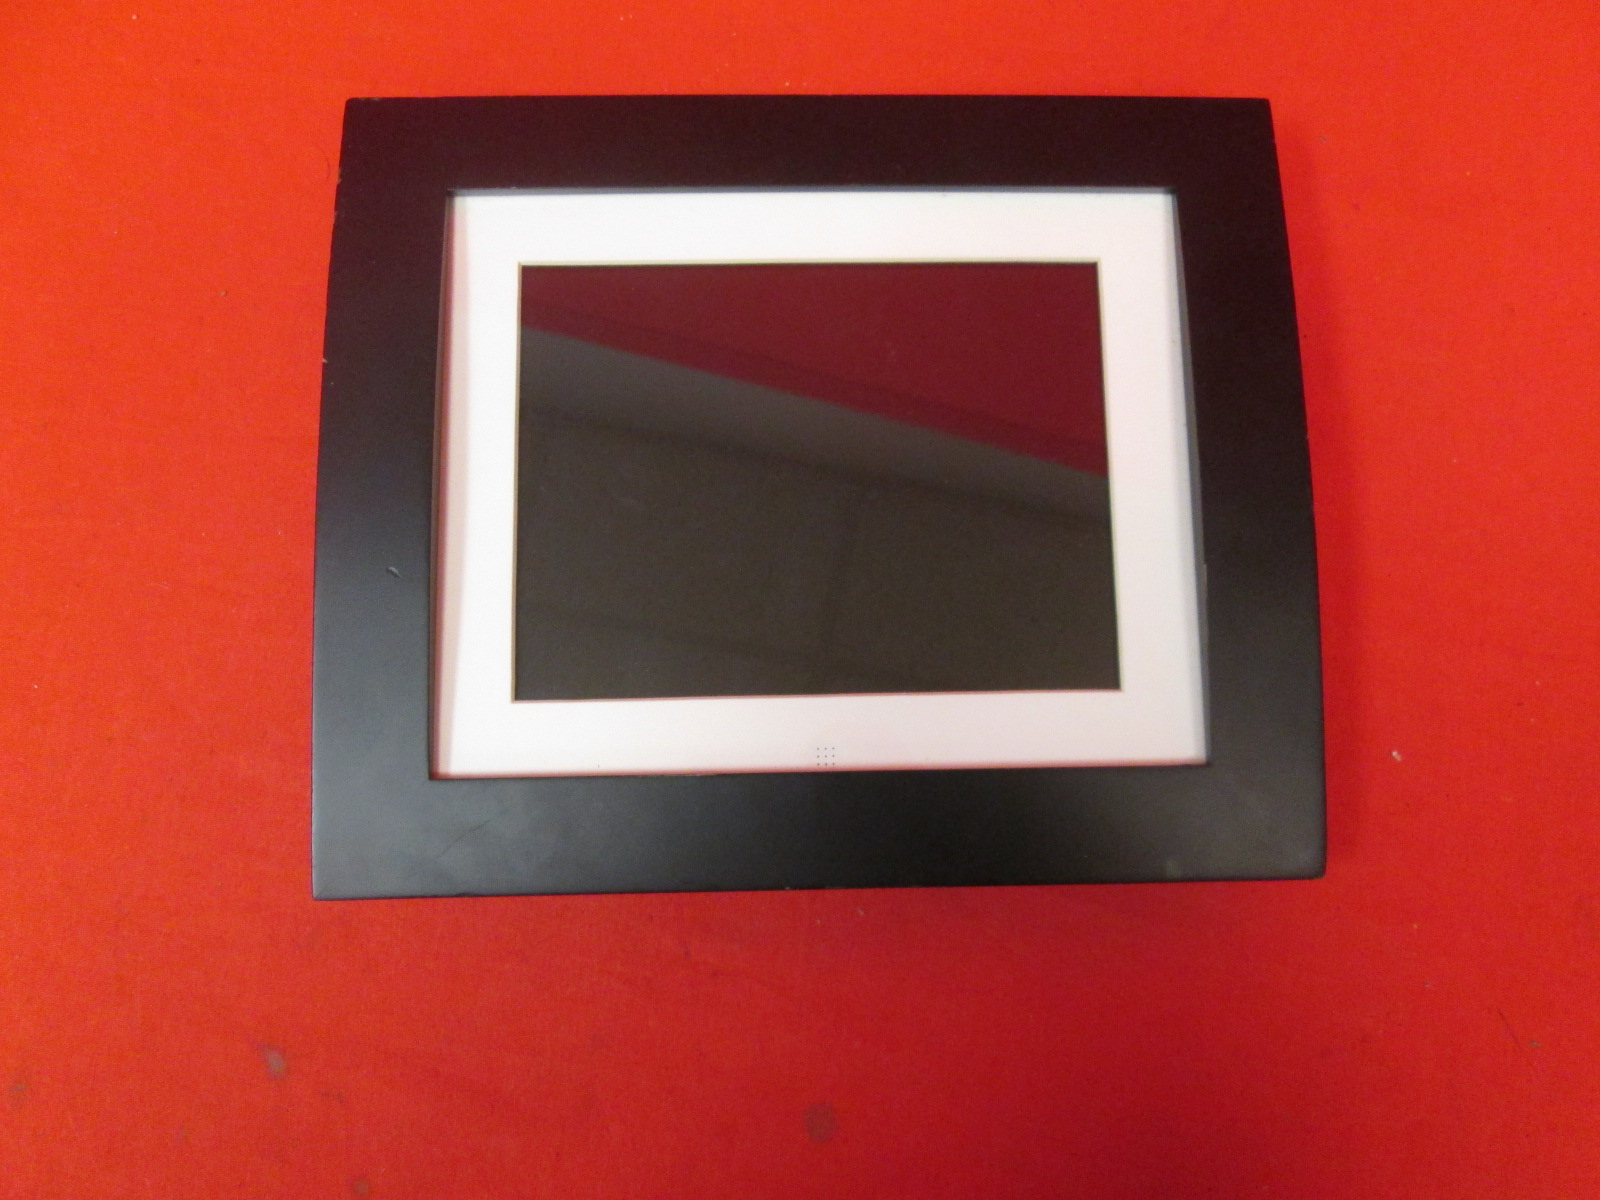 Gigaware 8 Inch Digital Photo Frame Incomplete